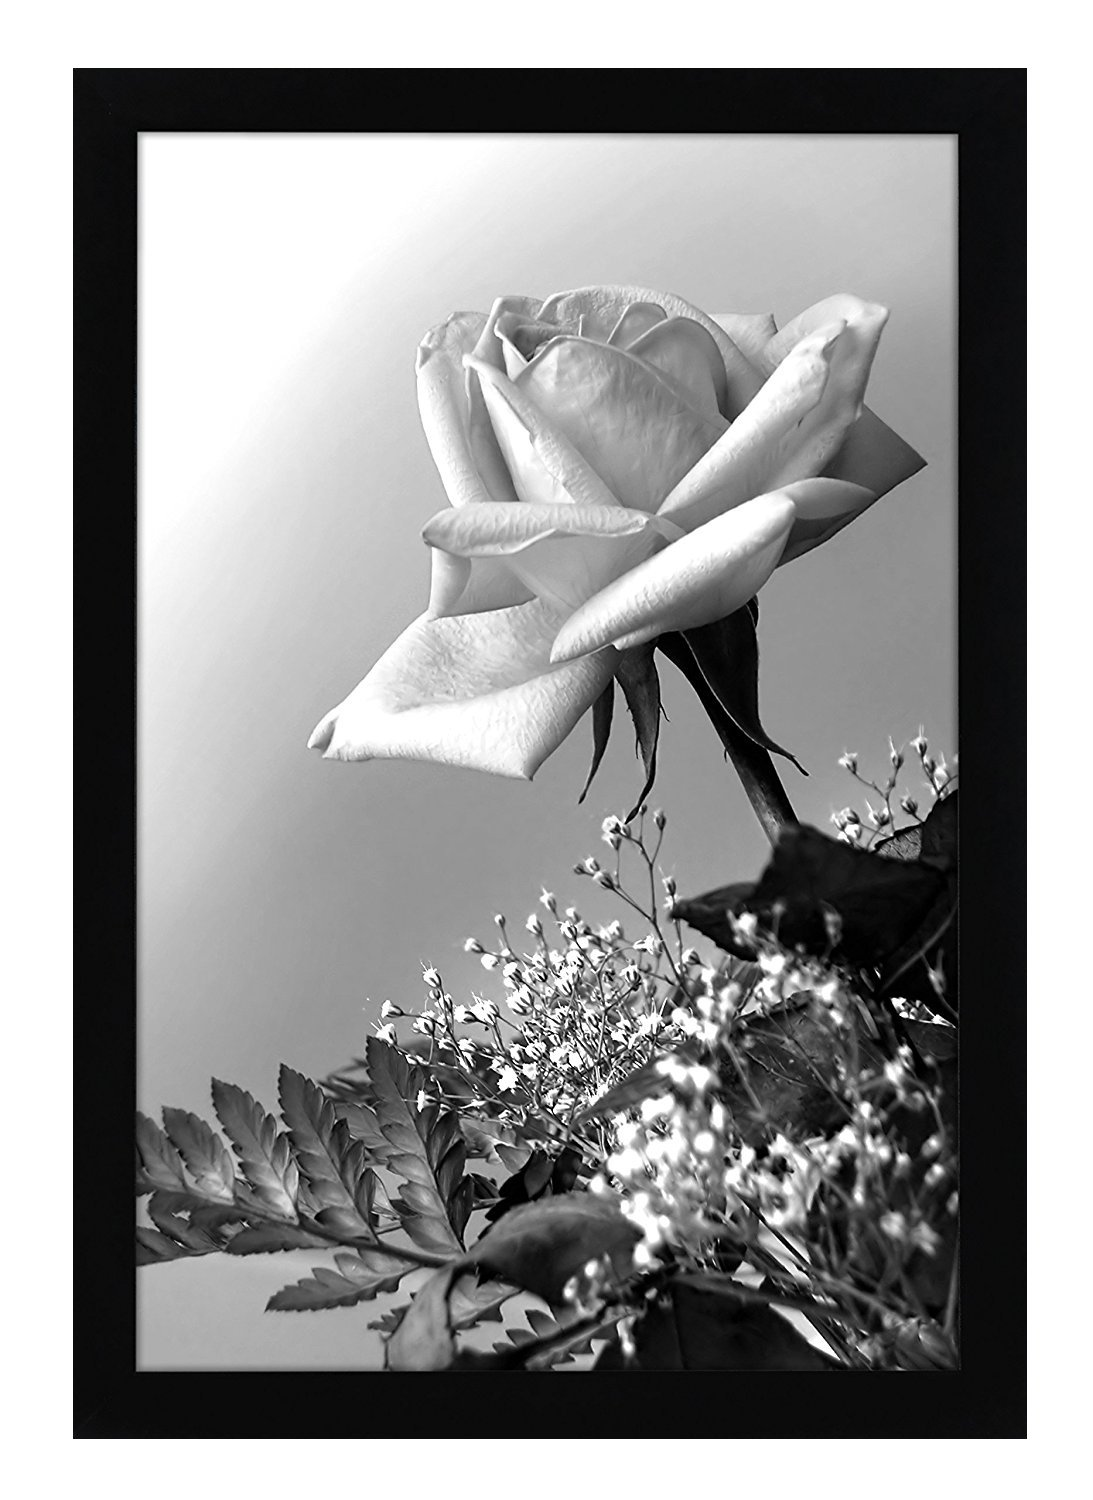 Americanflat 12x18 Black Frame with Plexiglass Front - Designed to Display Vertically or Horizontally on a Wall - Mounting Hardware Included